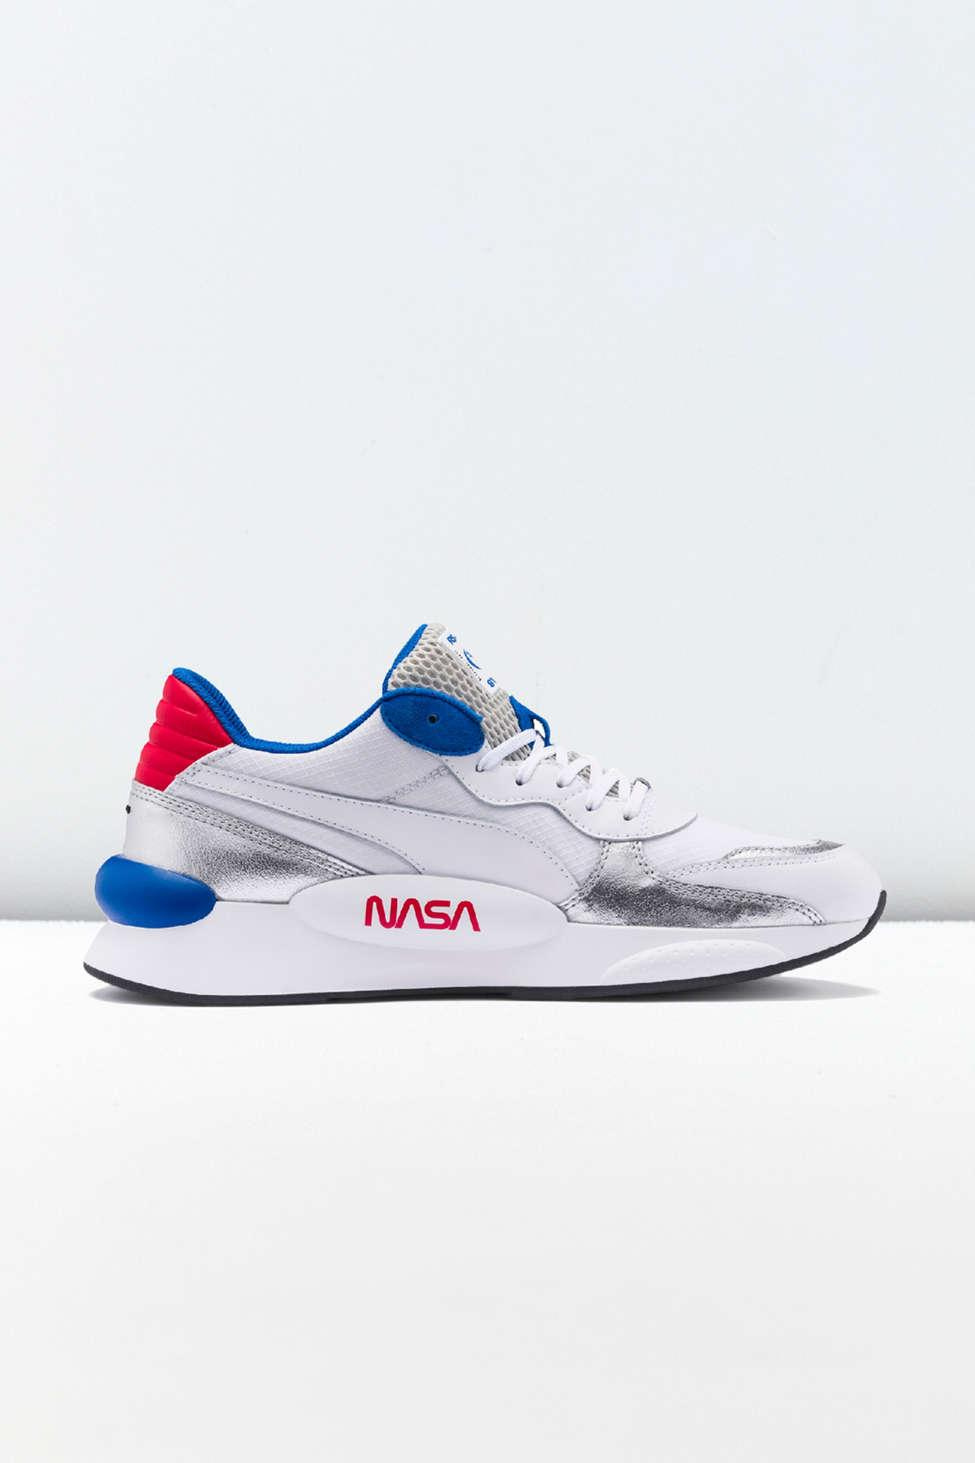 PUMA Leather Puma X Nasa Rs 9.8 Space Agencysneaker in Blue for ...